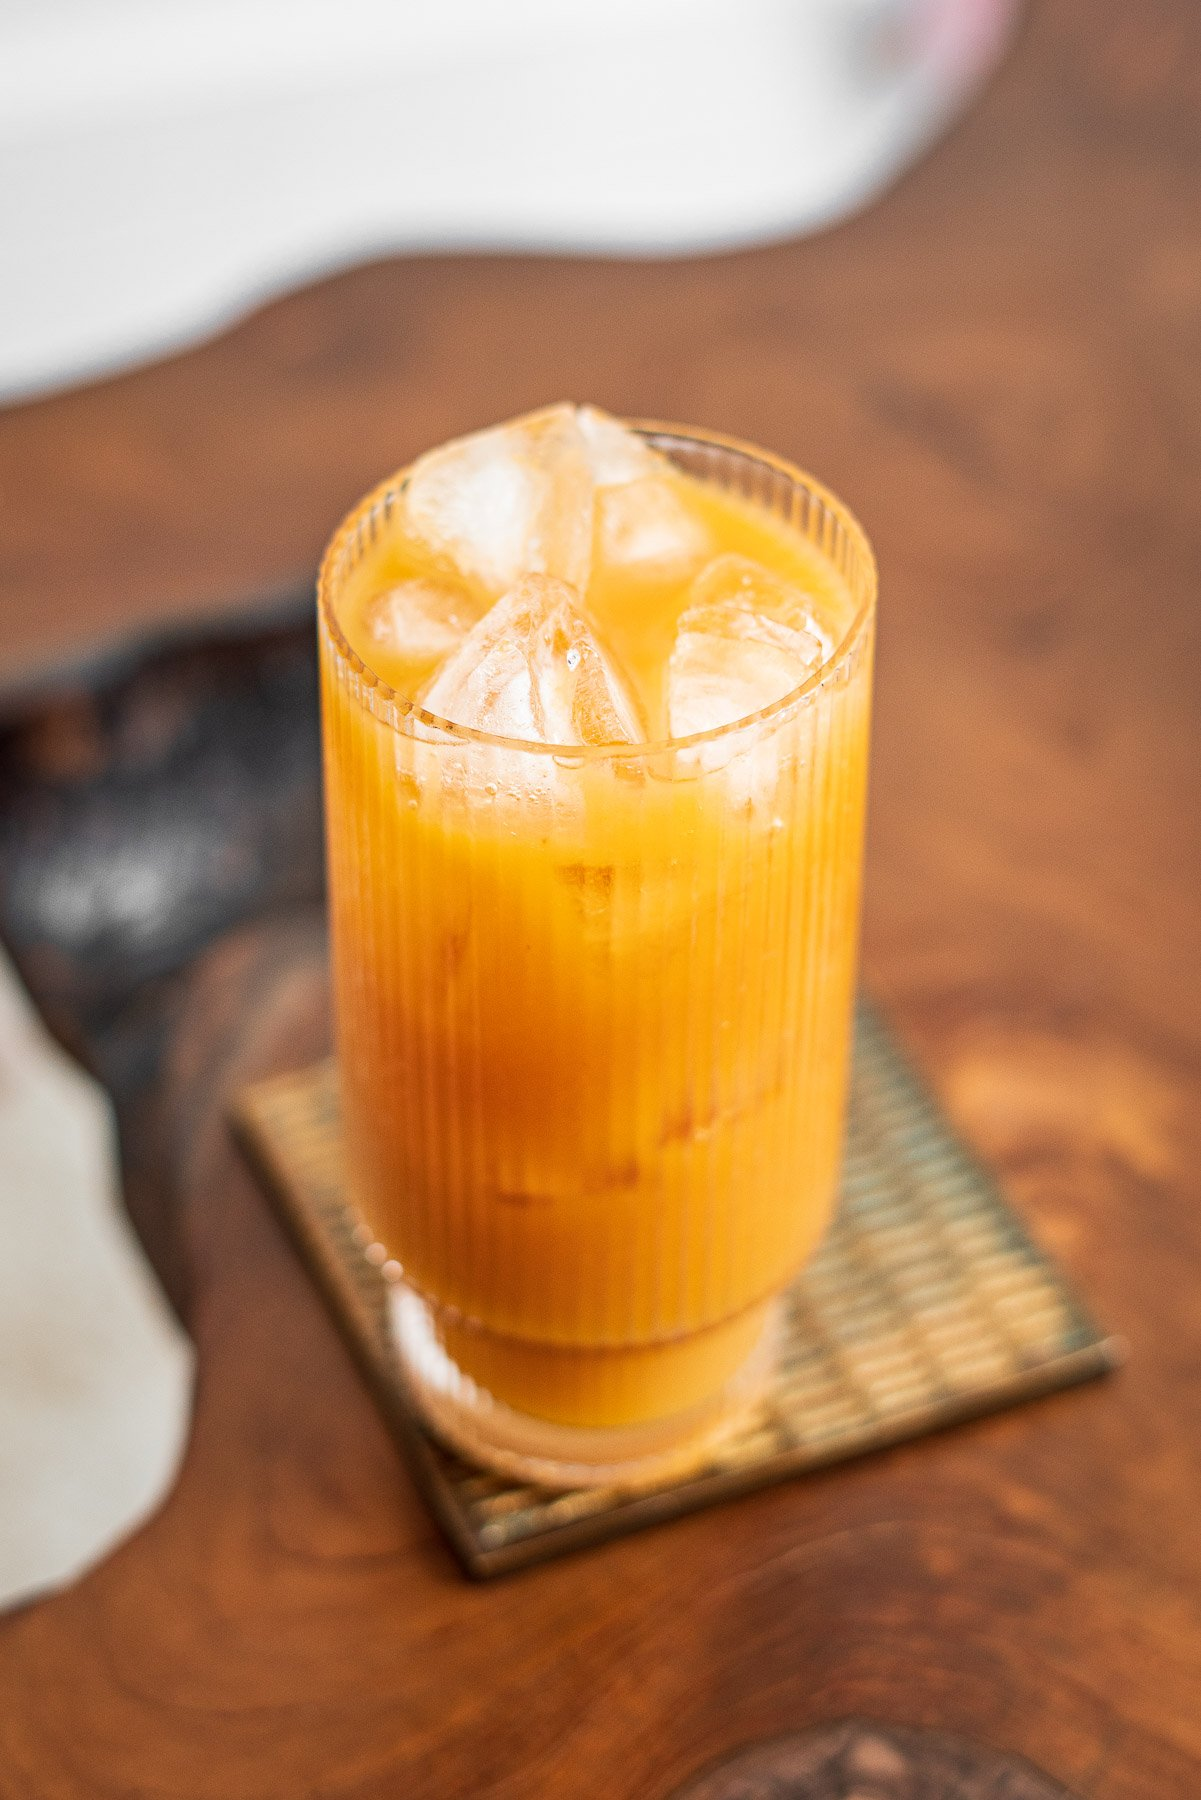 iced mango tea in a tall glass on a wooden table